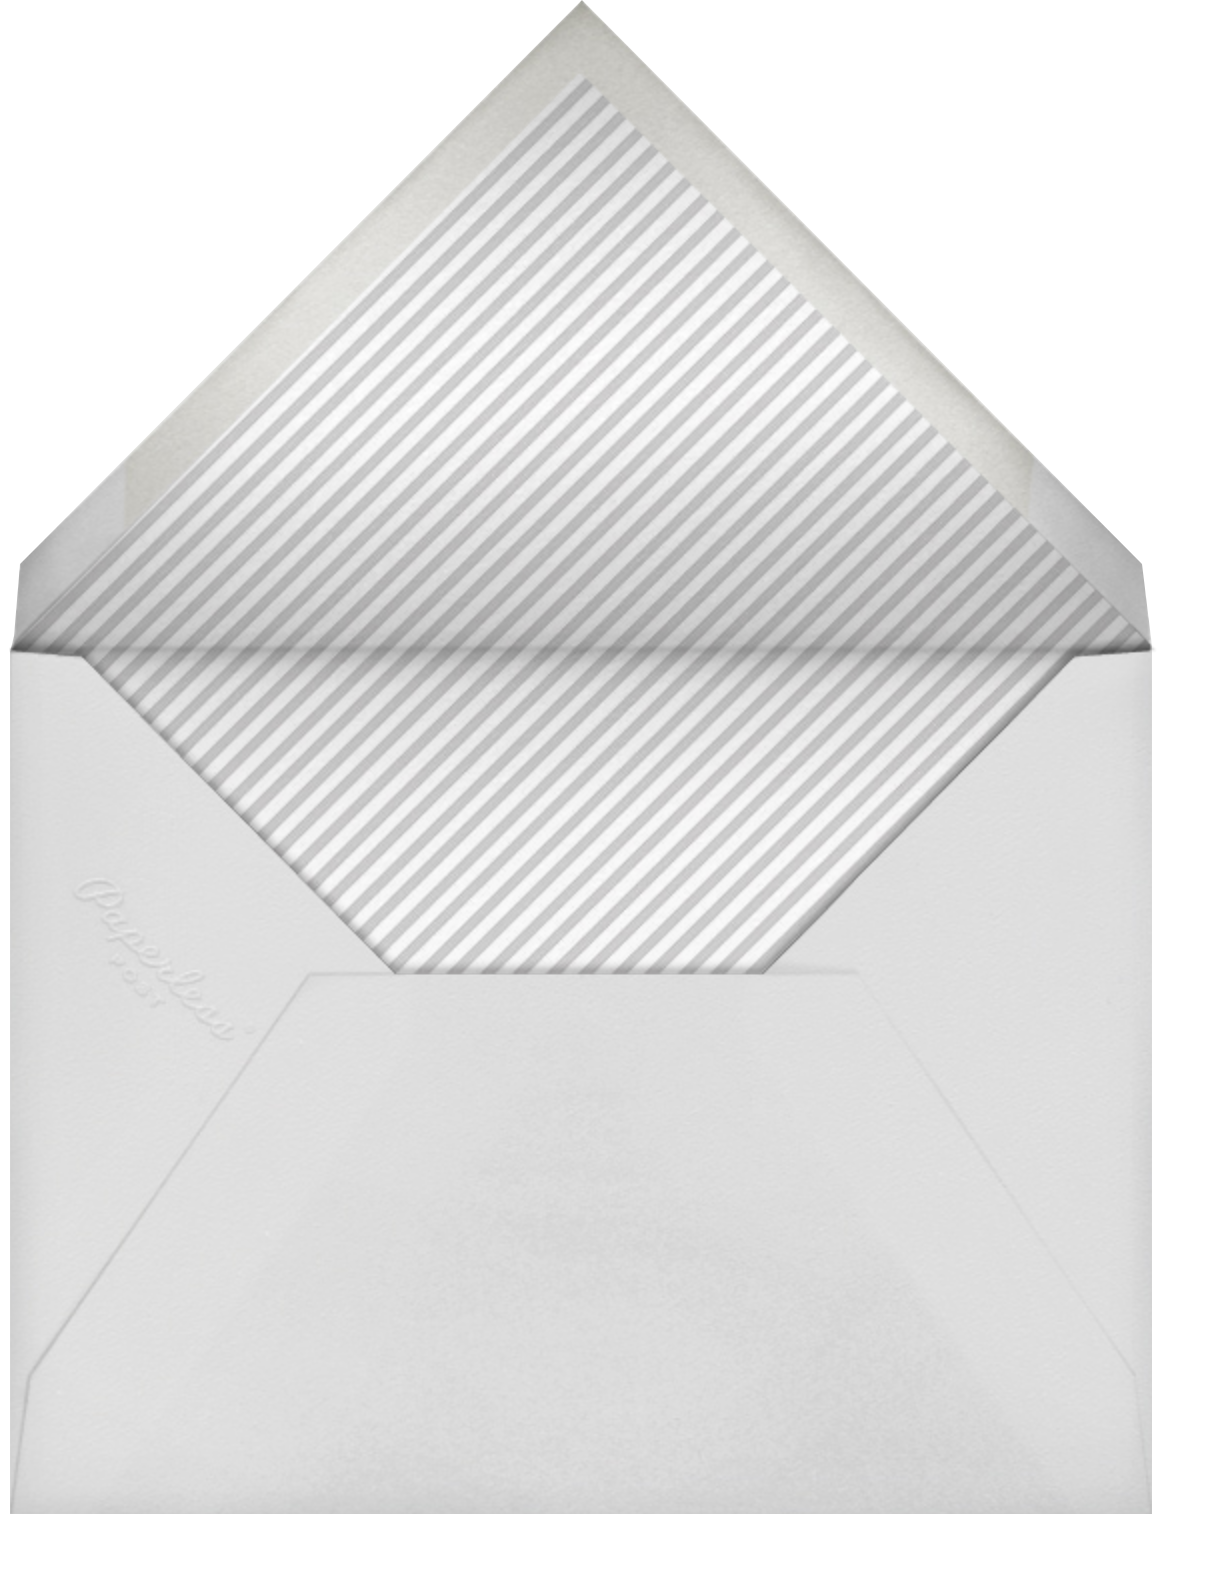 Two of a Kind - Paperless Post - Graduation party - envelope back